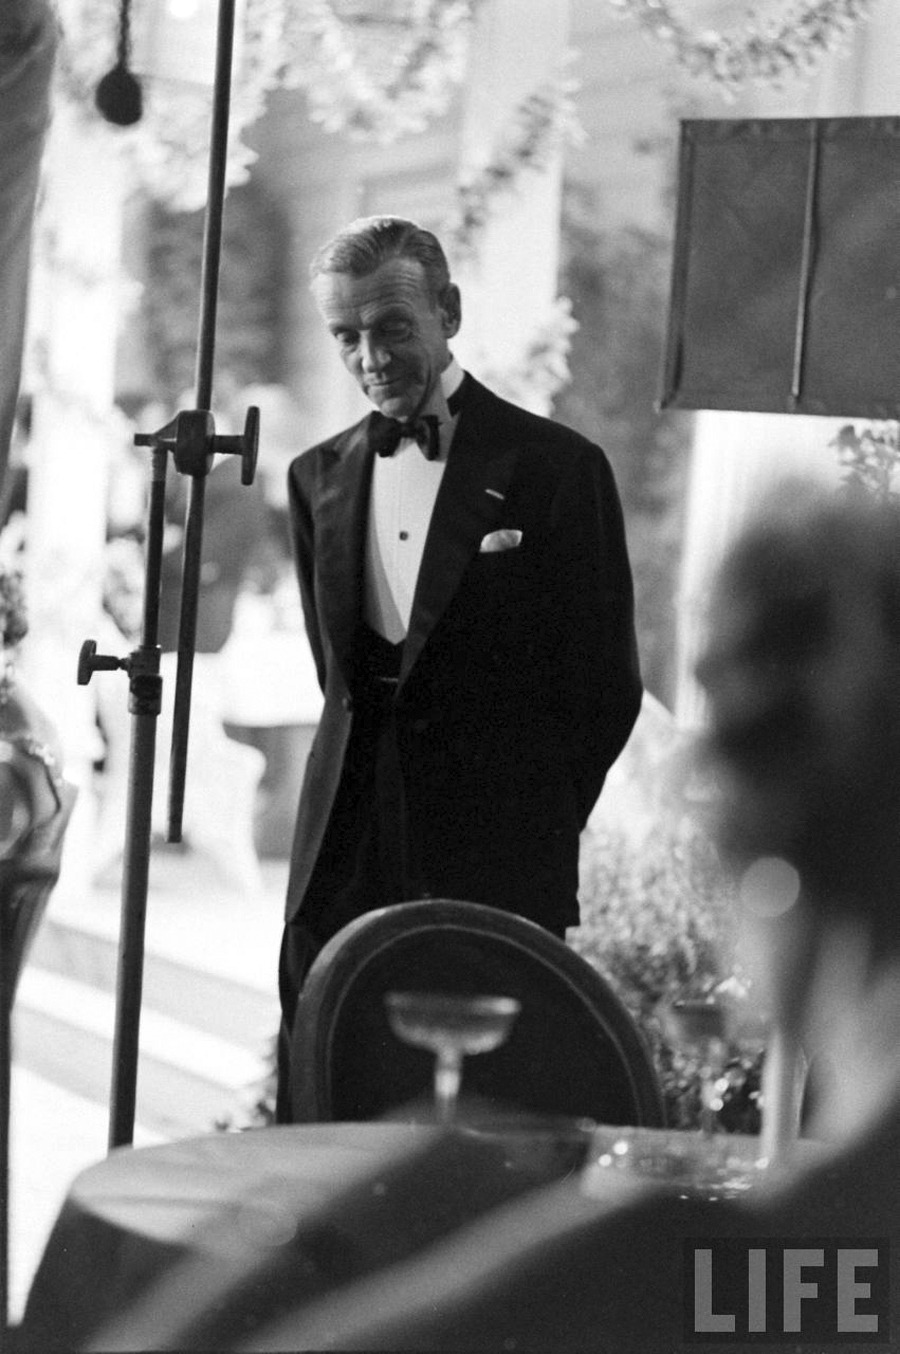 The High Wing Collar Crowd. Fred Astaire and the art of black tie.